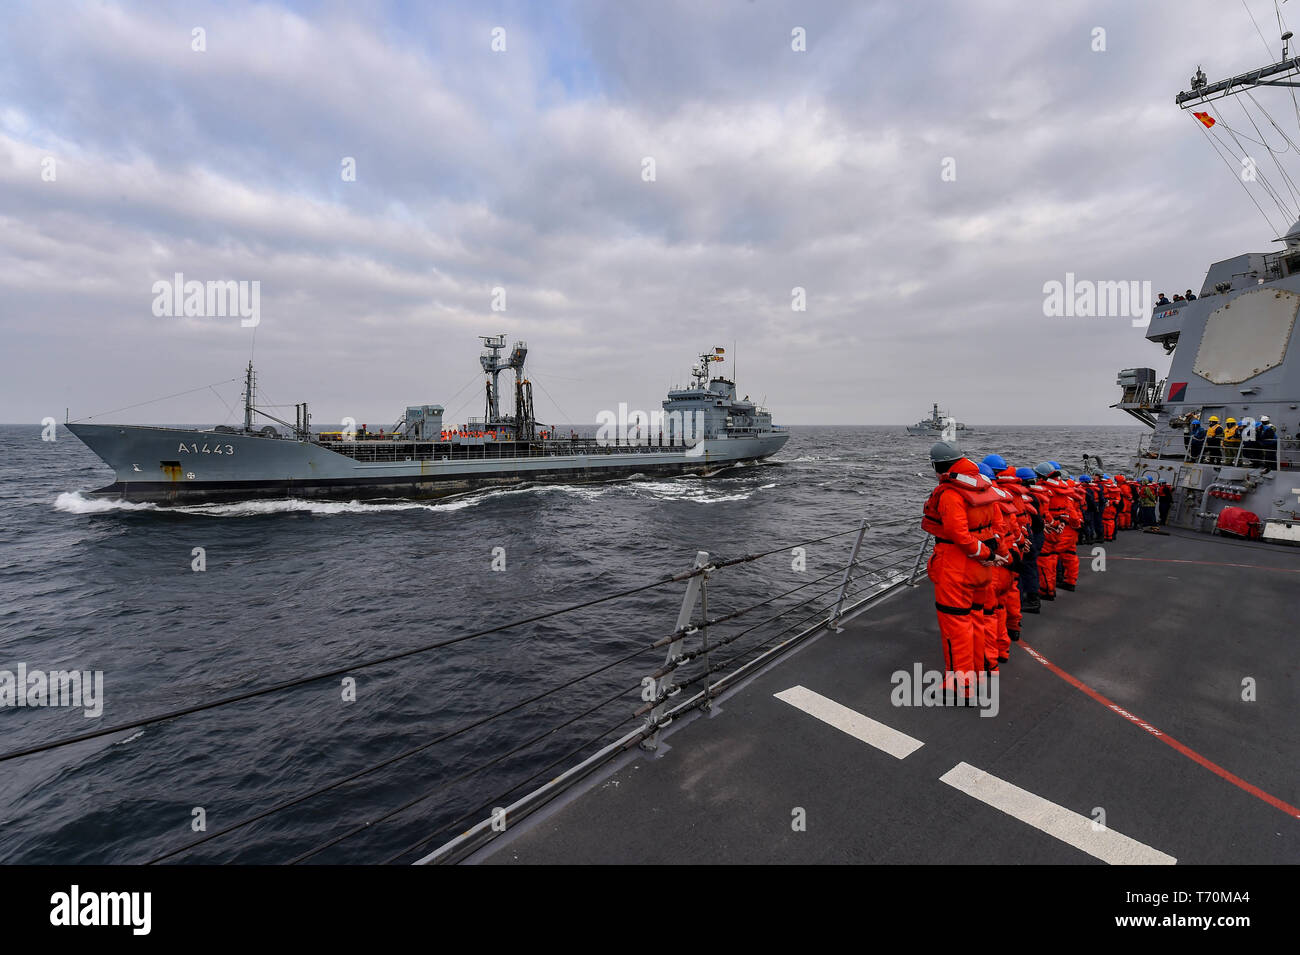 190502-N-JX484-071 BALTIC SEA (May 2, 2019) Sailors man the